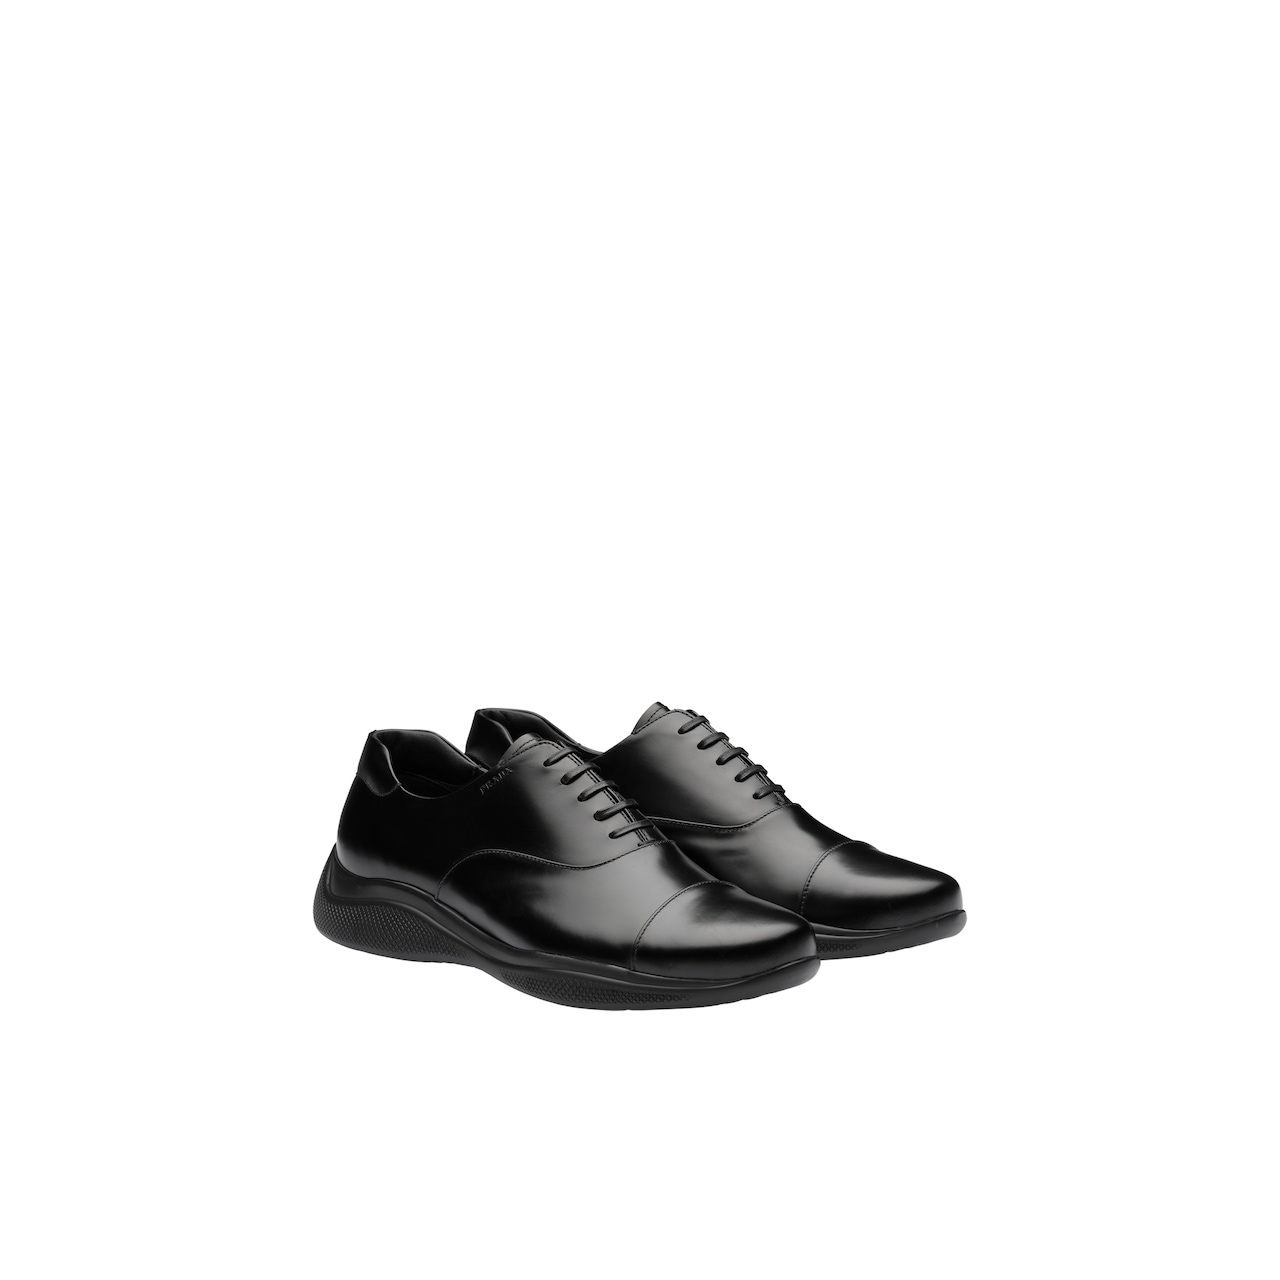 Prada Brushed leather Oxford shoes 1